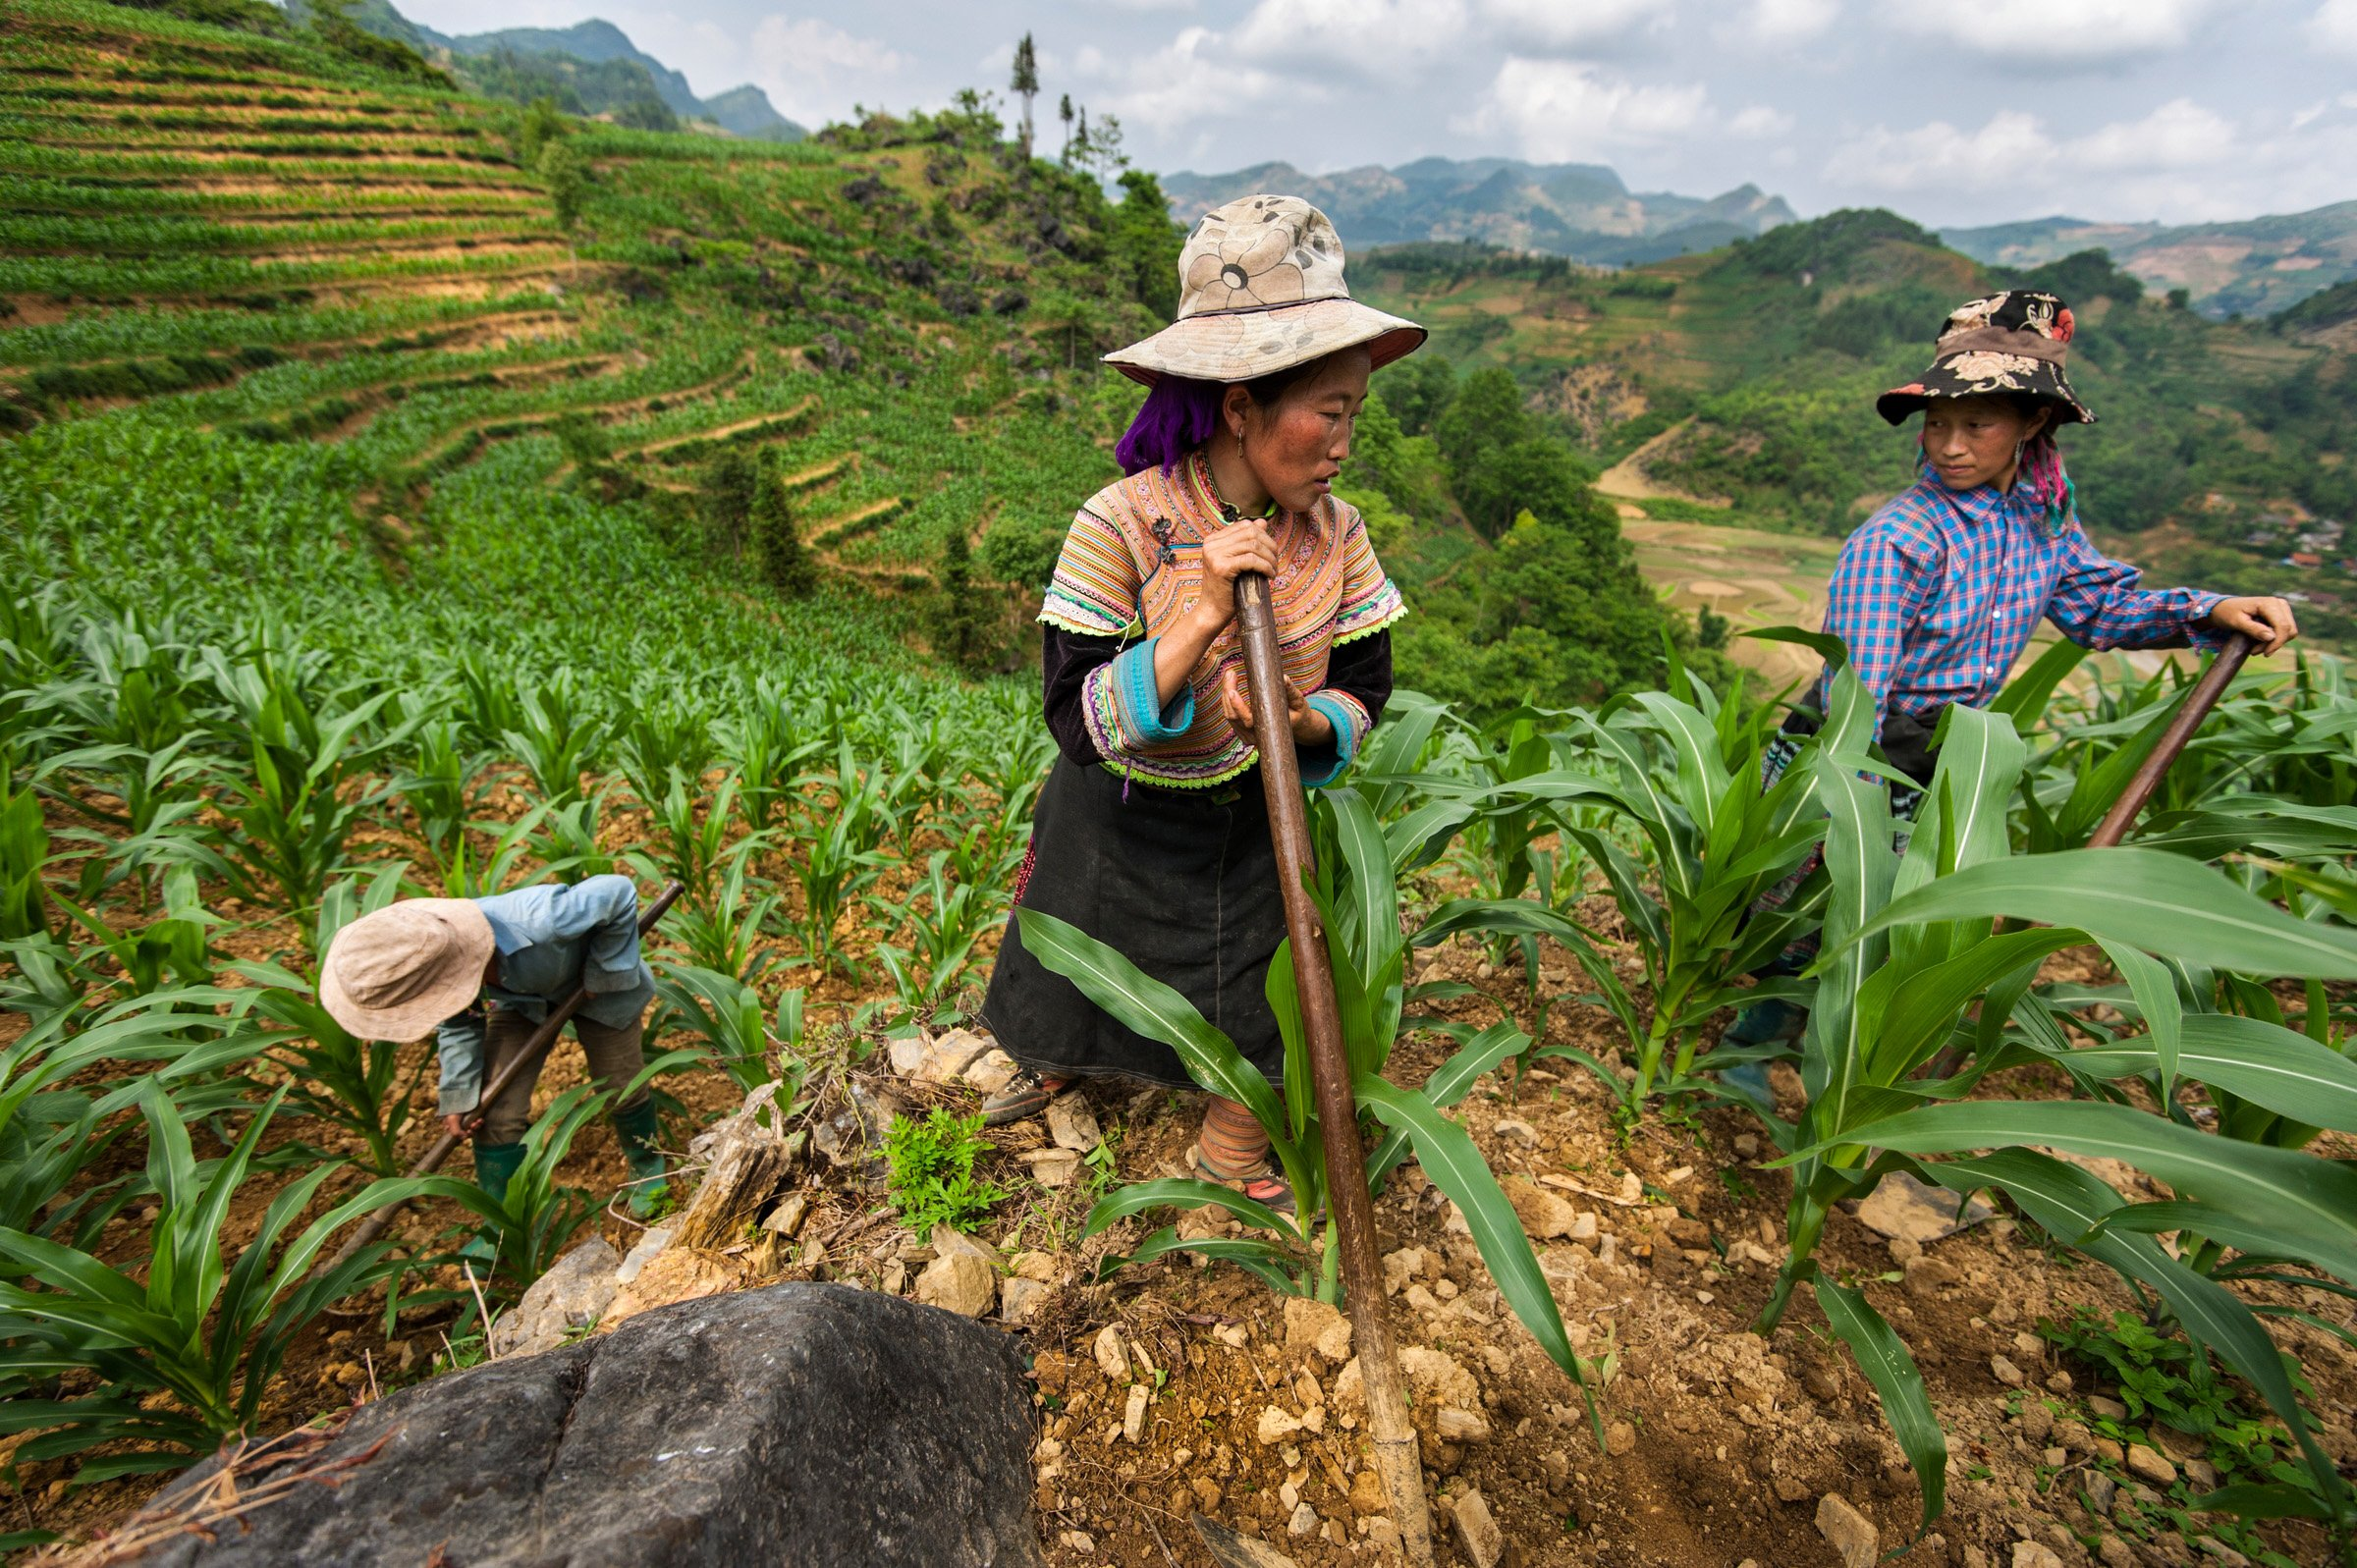 Lao Cai province of northern Vietnam borders the Chinese border and is home to a number of different ethnic minorities that have lived in the area for centuries. Today, 54 recognized ethnic minorities of Vietnam still live in Lao Cai province, including the H'mong, Tay and Dzao people.